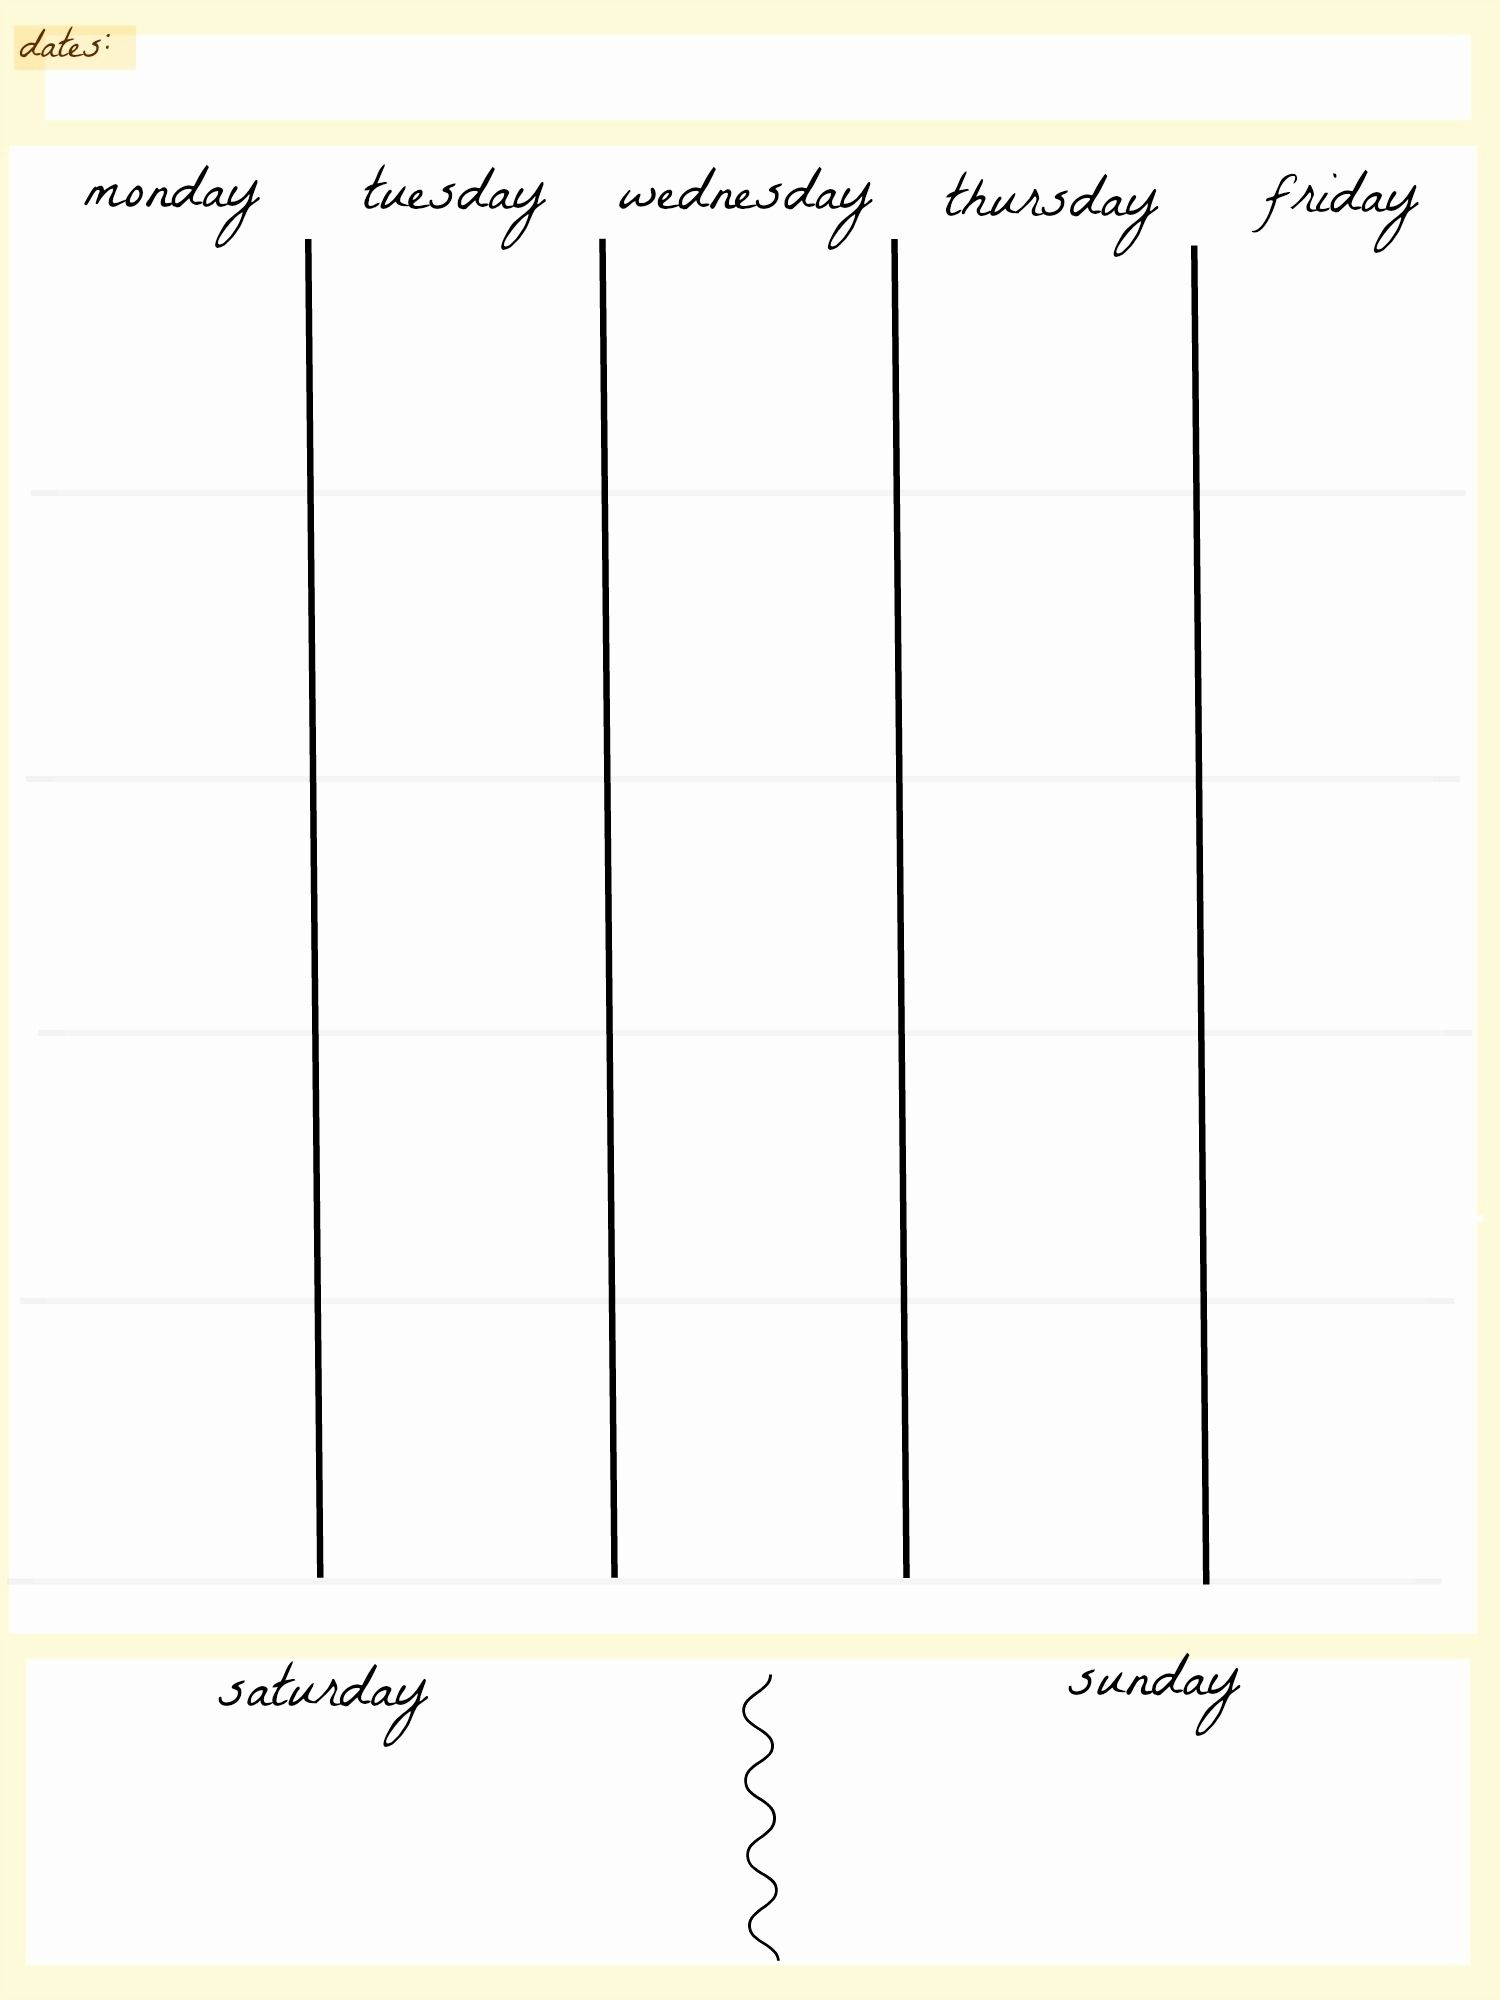 Blank Calendar 5 Day Week | Blank Calendar Template Dowload in 5 Day Weekly Calendar Template